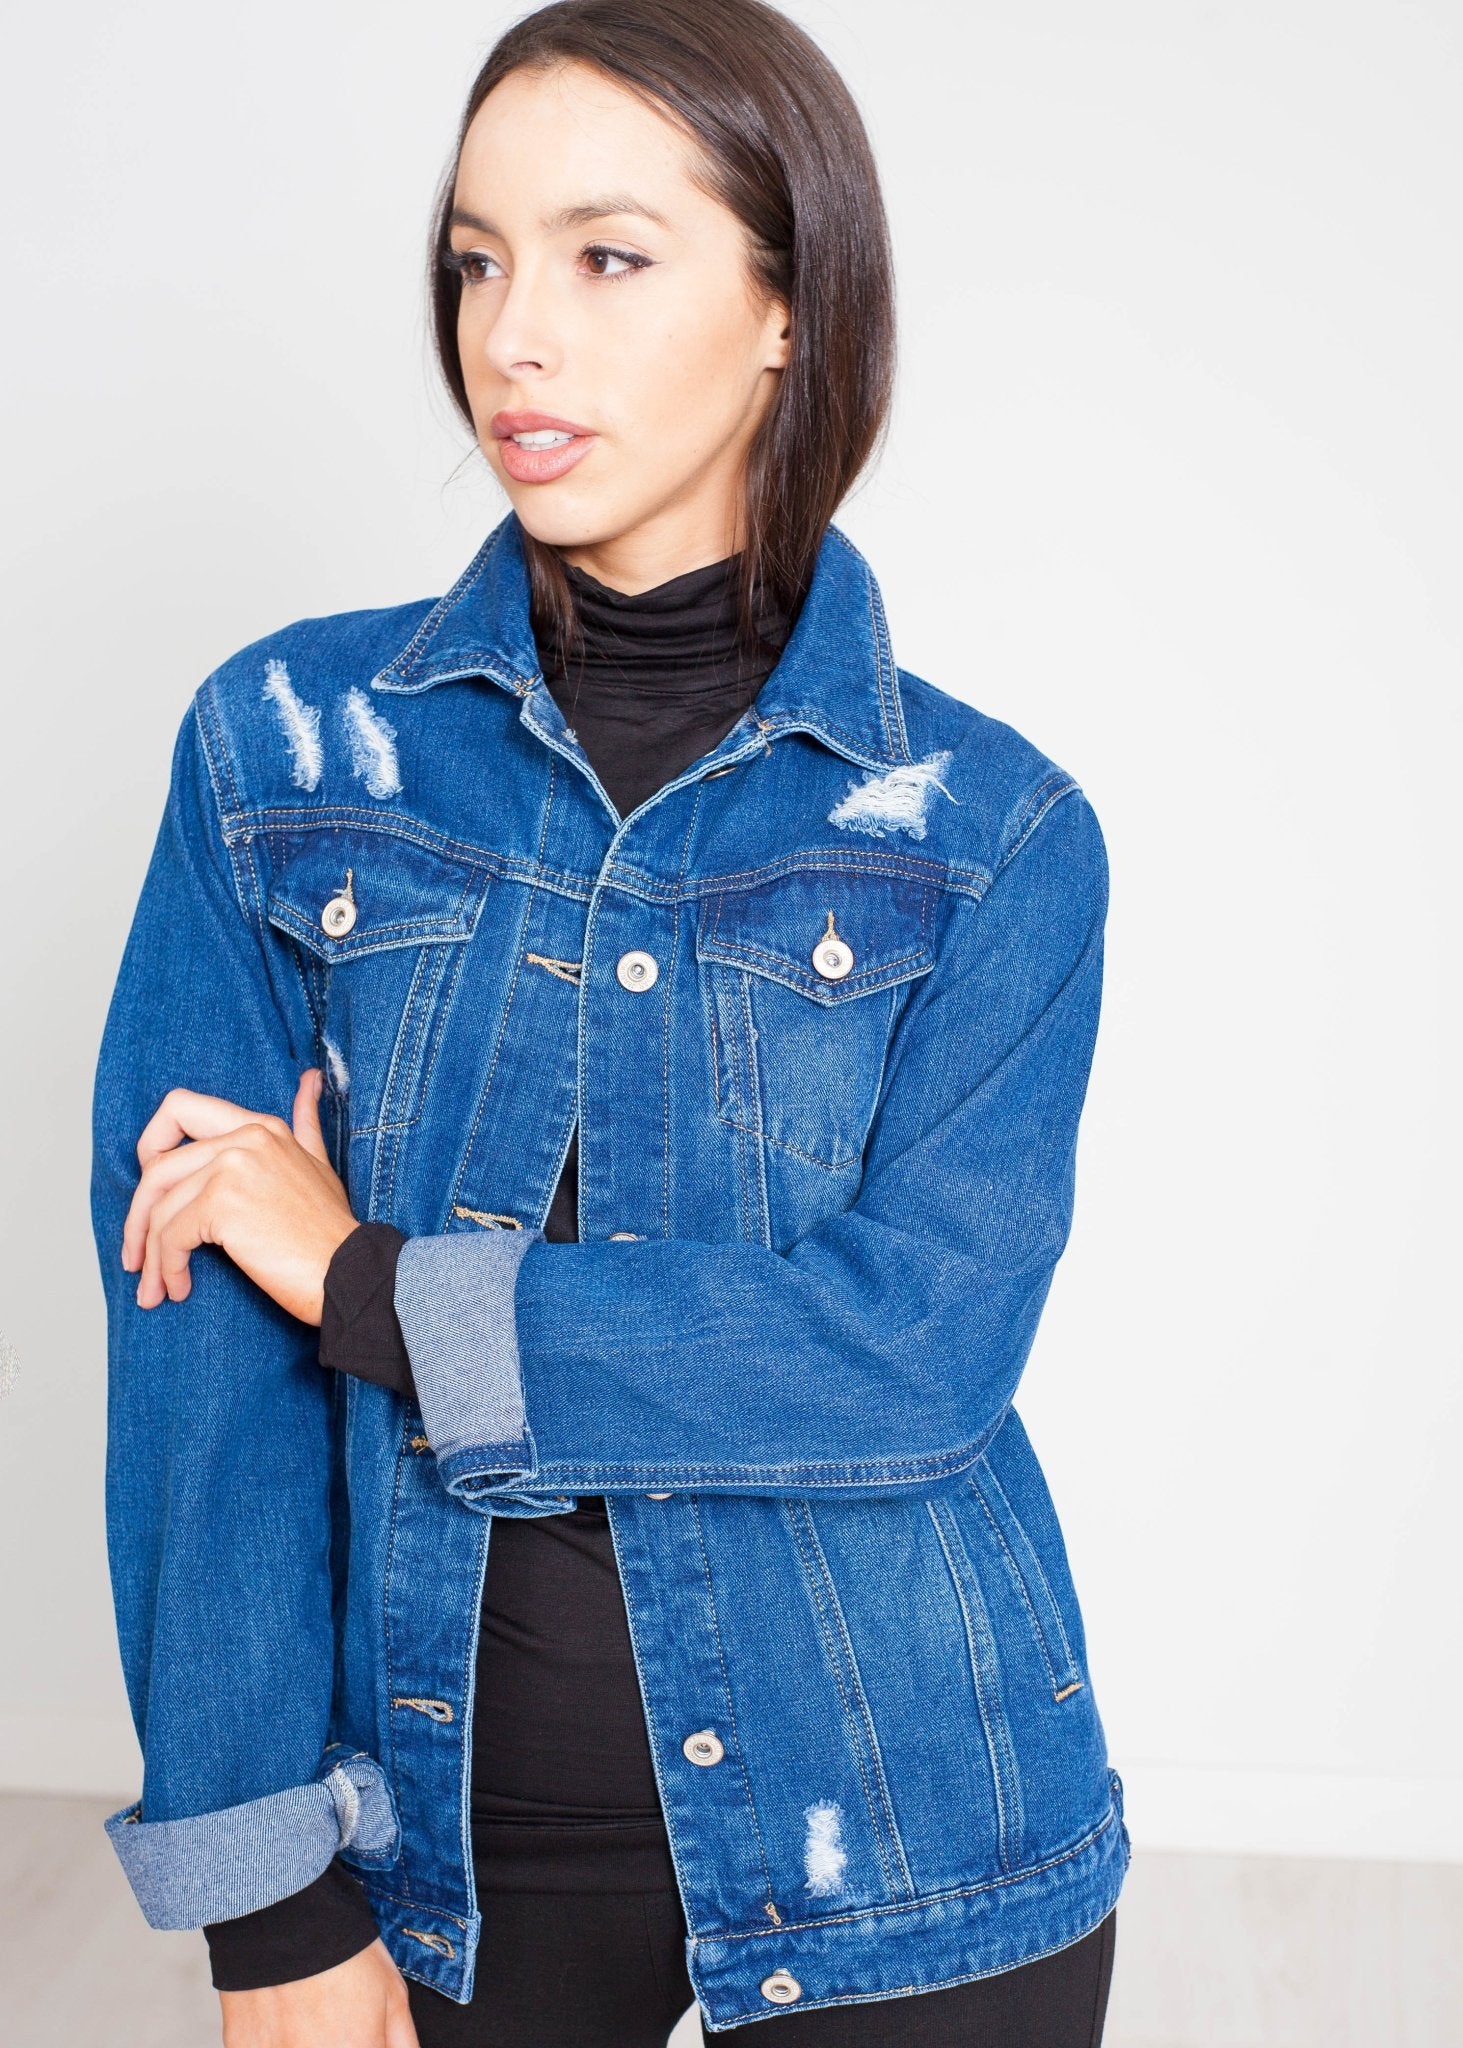 Priya Distressed Jacket In Denim - The Walk in Wardrobe